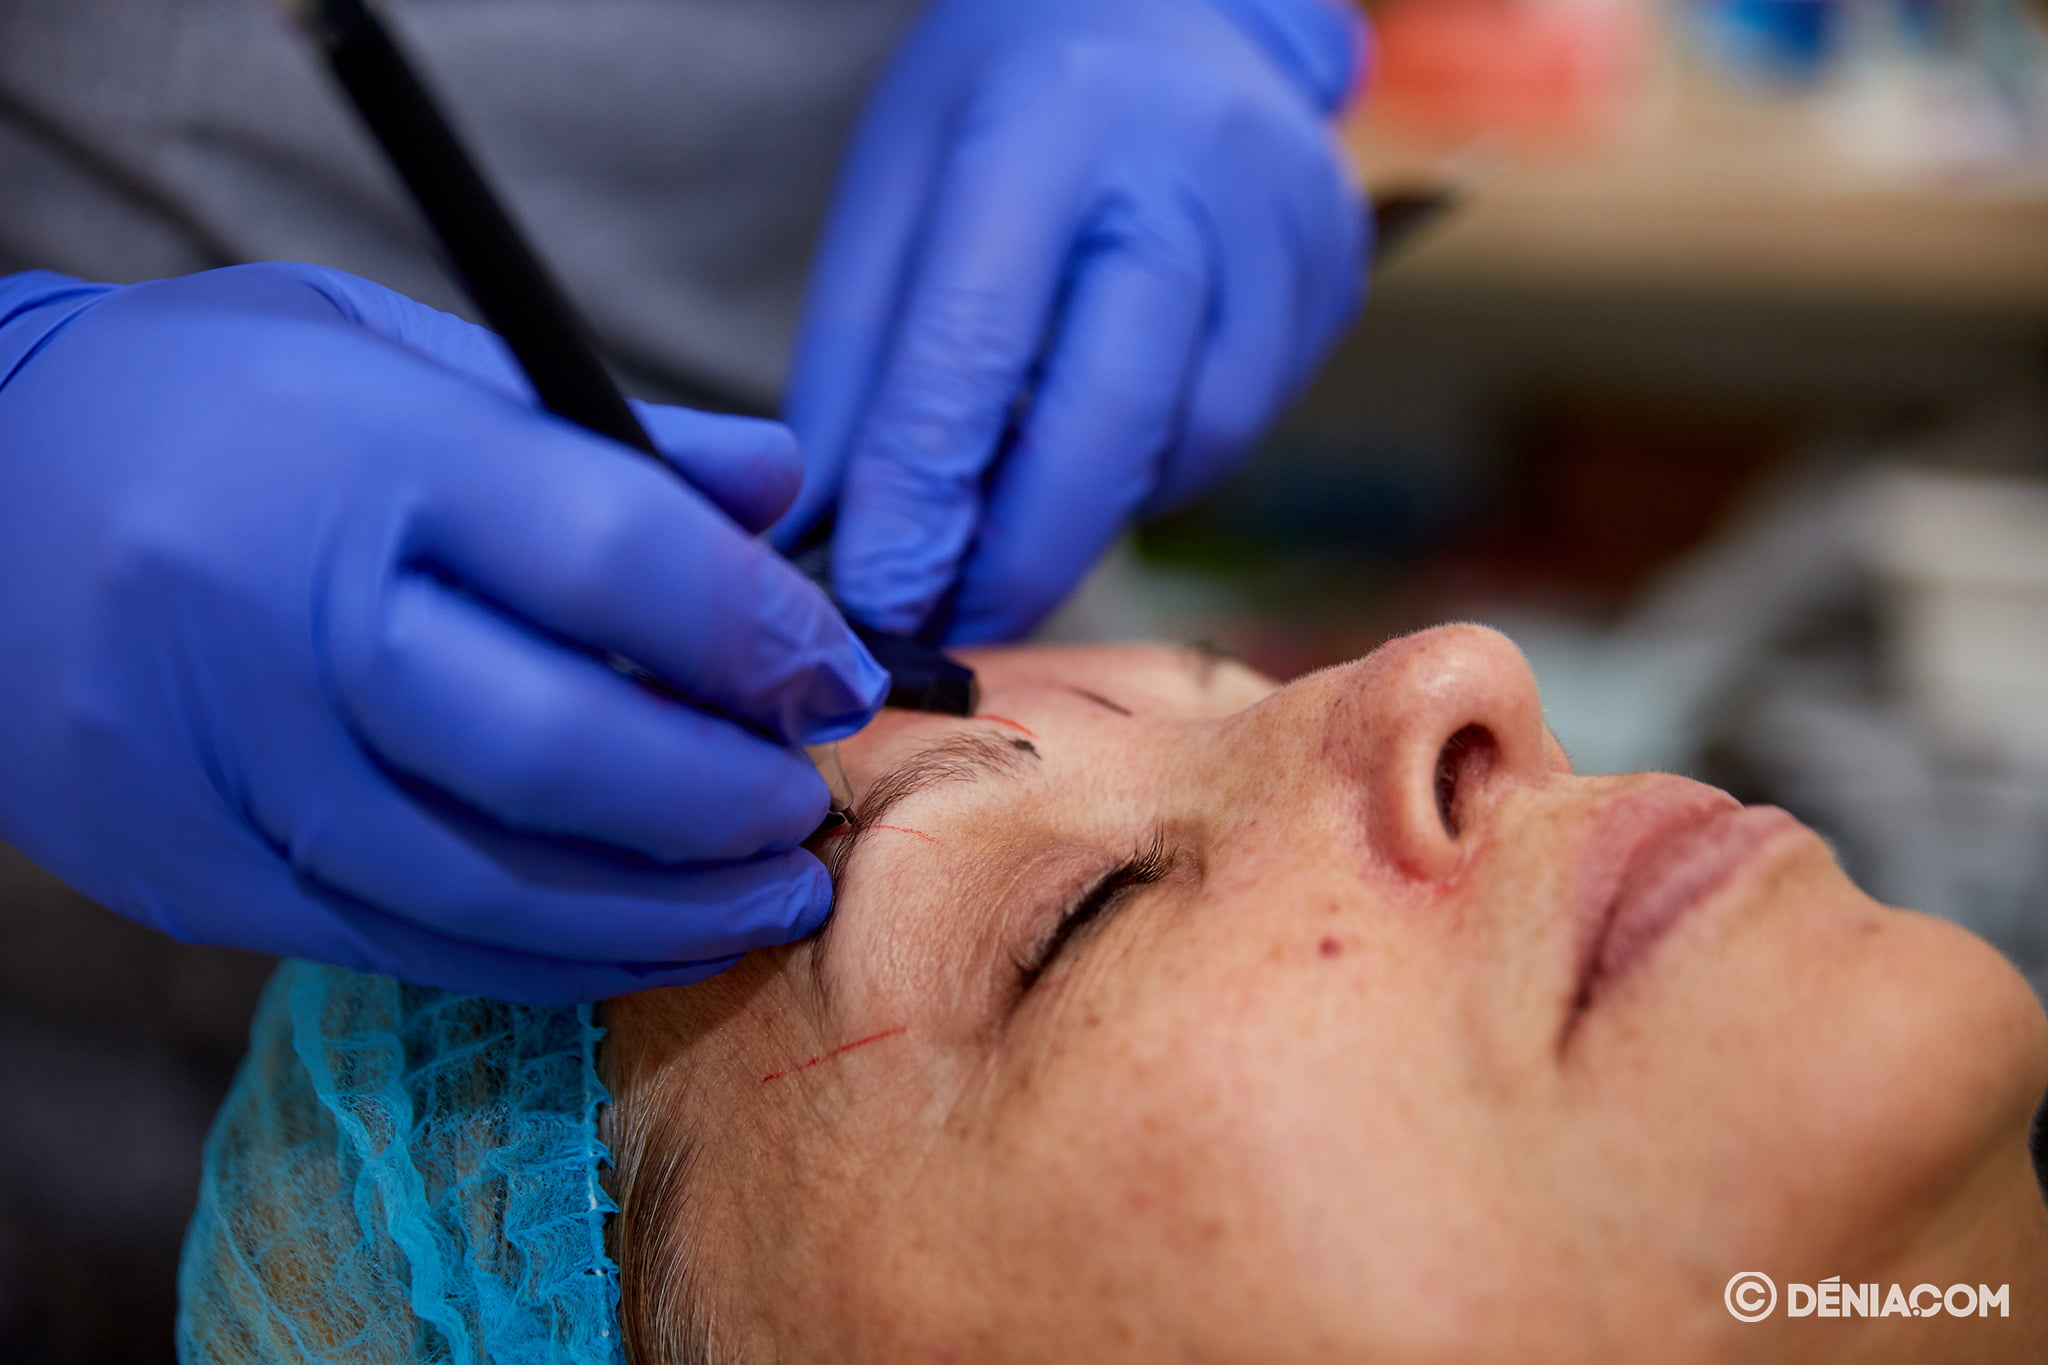 Microblading of eyebrows in Dénia - Guaraná aesthetic Center